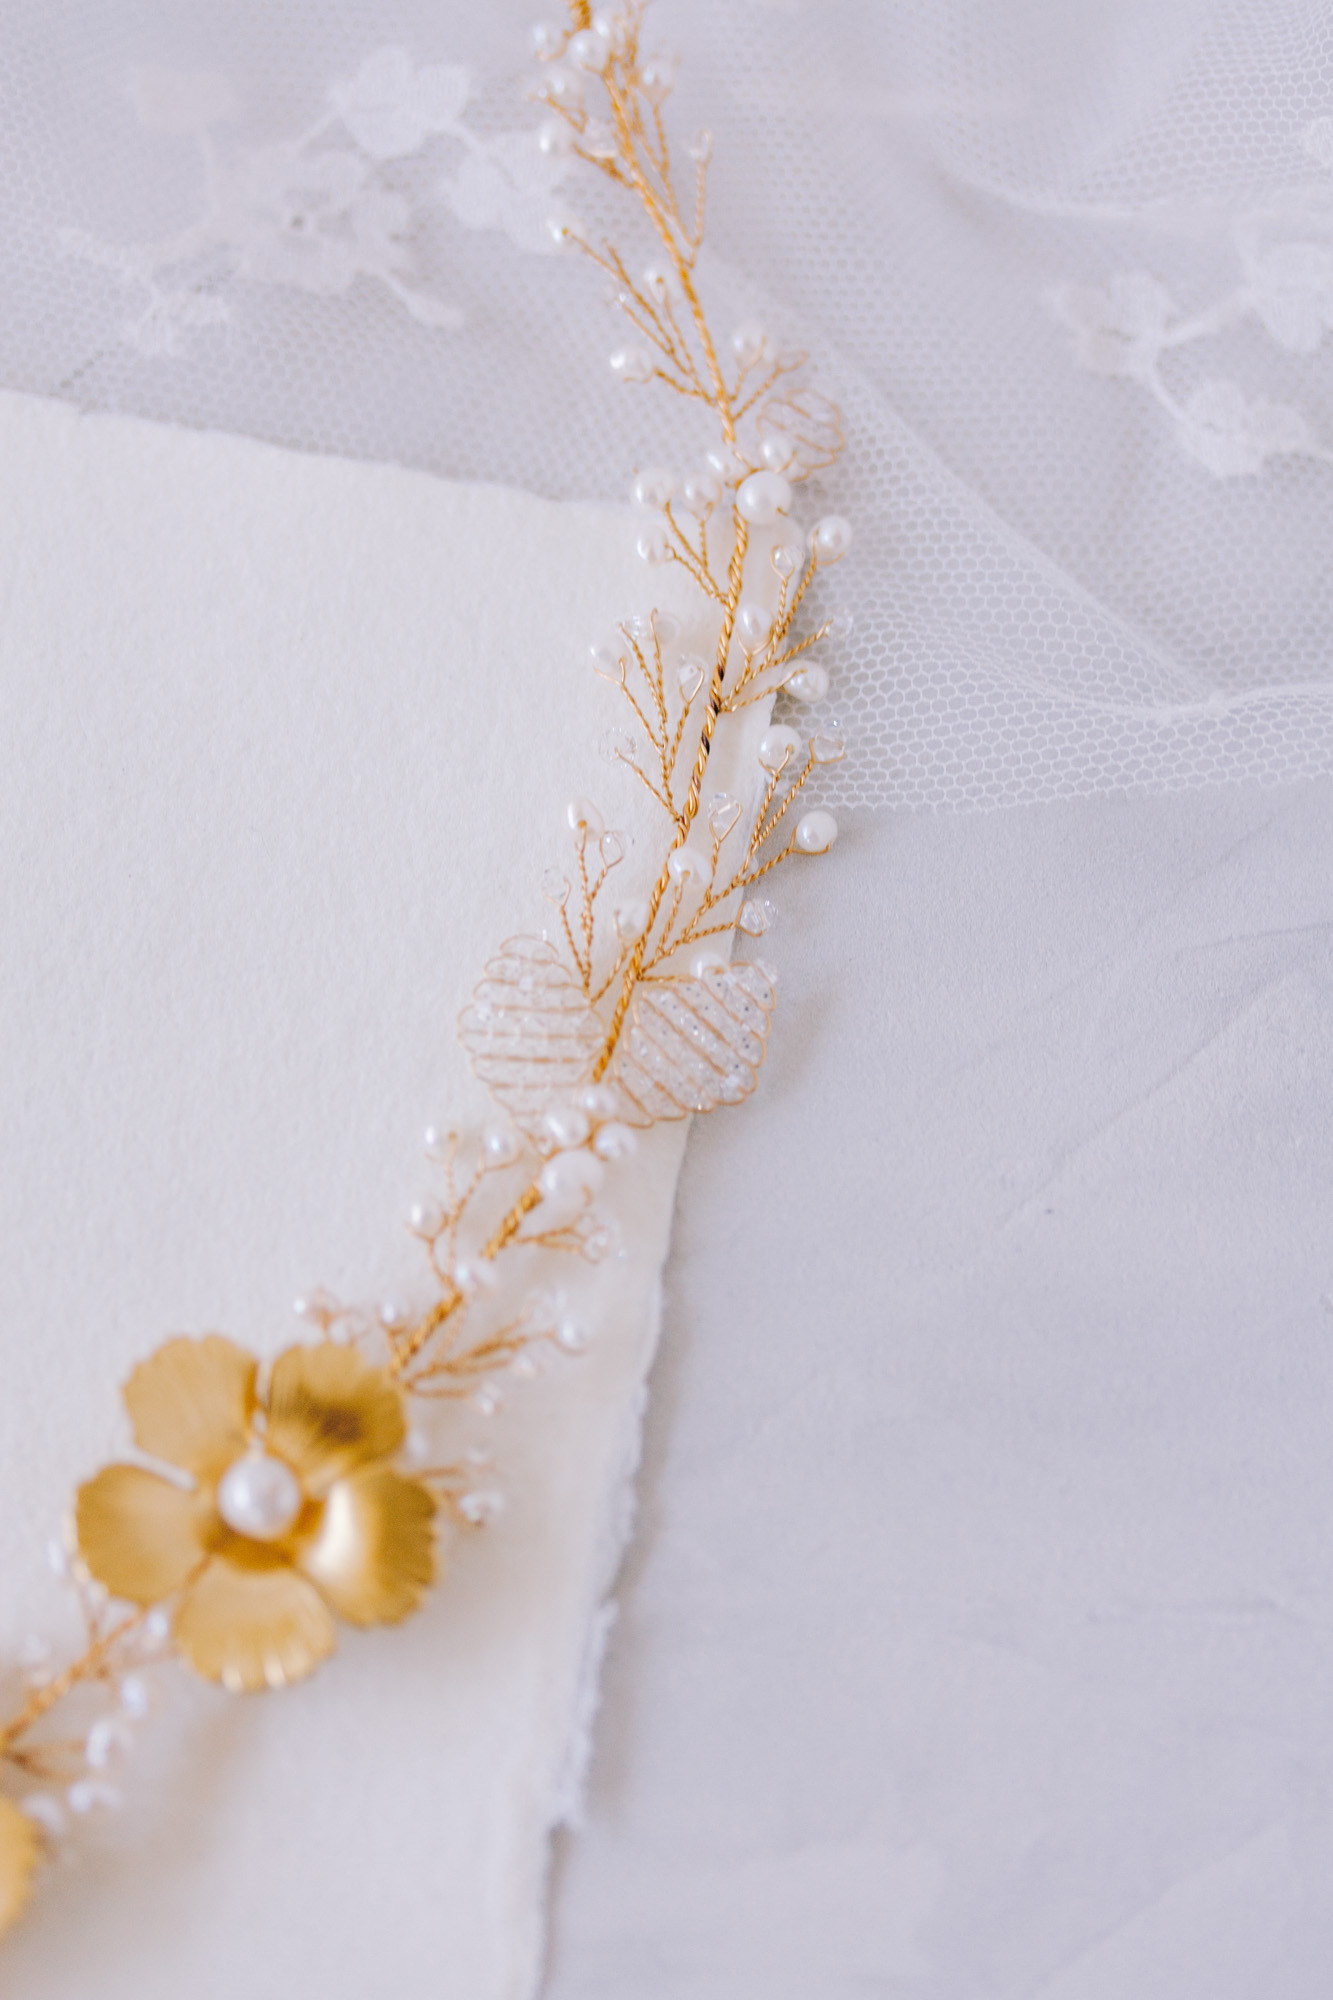 Bespoke bridal headpiece hairjewellery with golden flowers with tiny sparkling crystals and high-quality freshwater pearls.